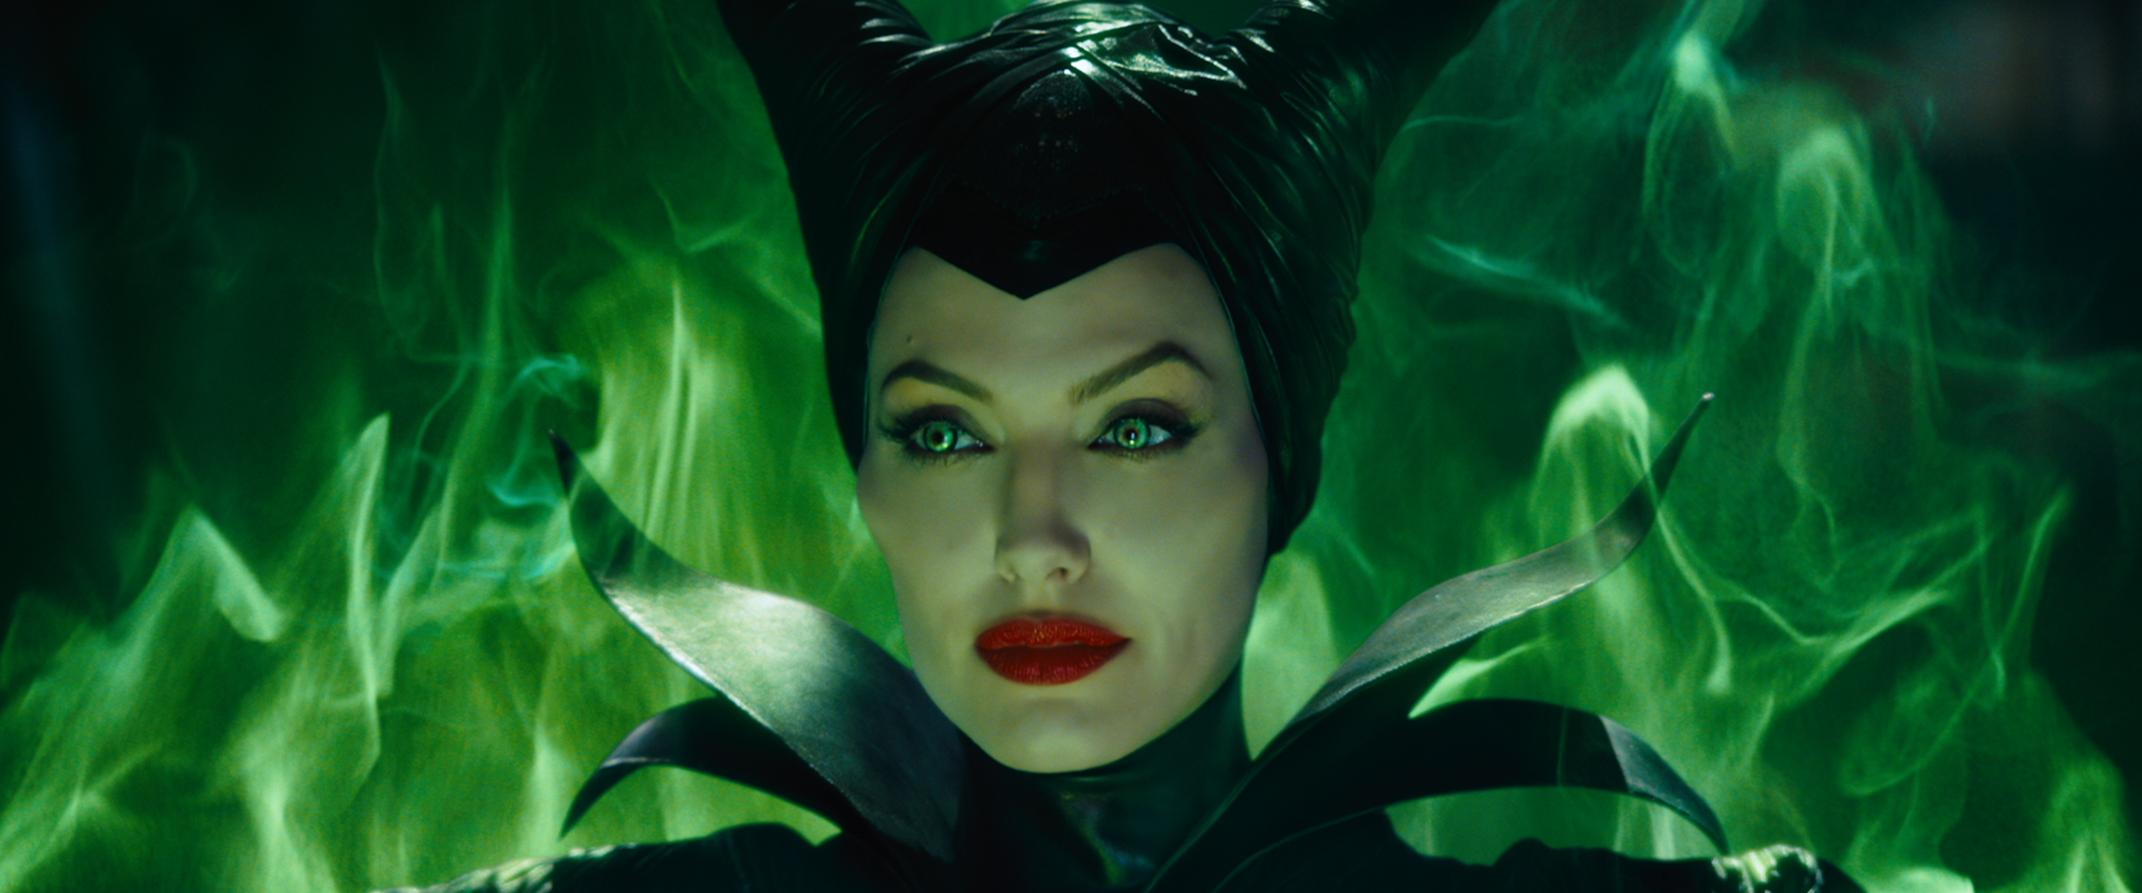 Angelina Jolie S Favorite Maleficent 2 Outfits Revealed